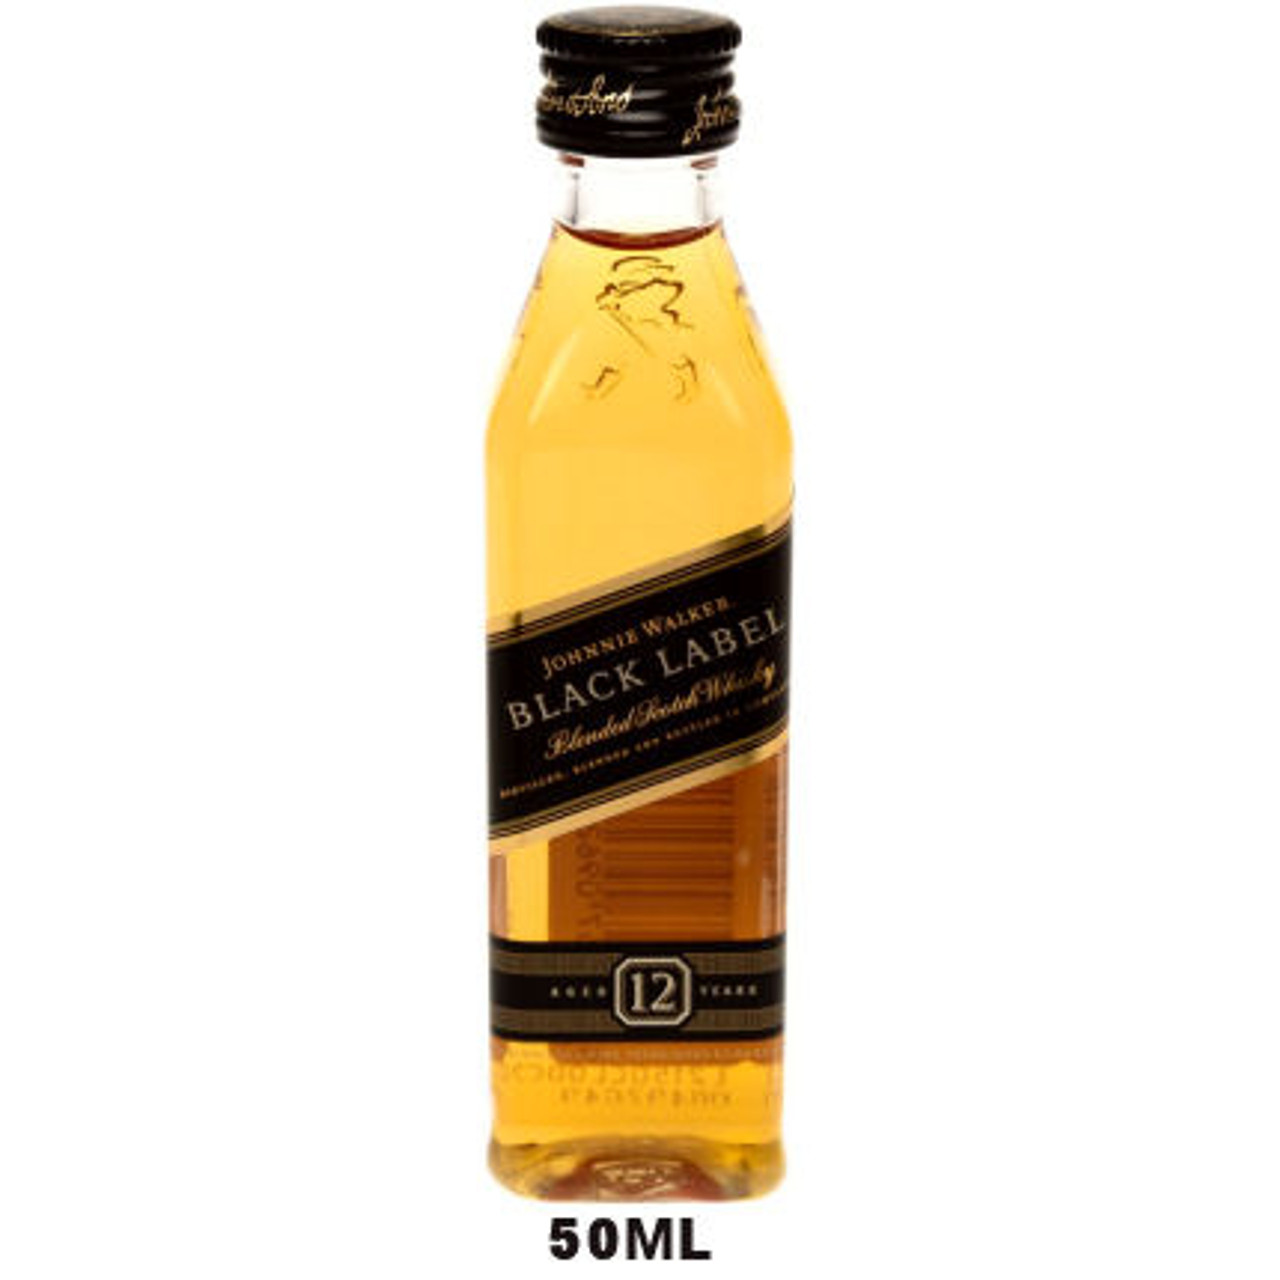 50ml Mini Johnnie Walker Black Label 12 Year Old Blended Scotch